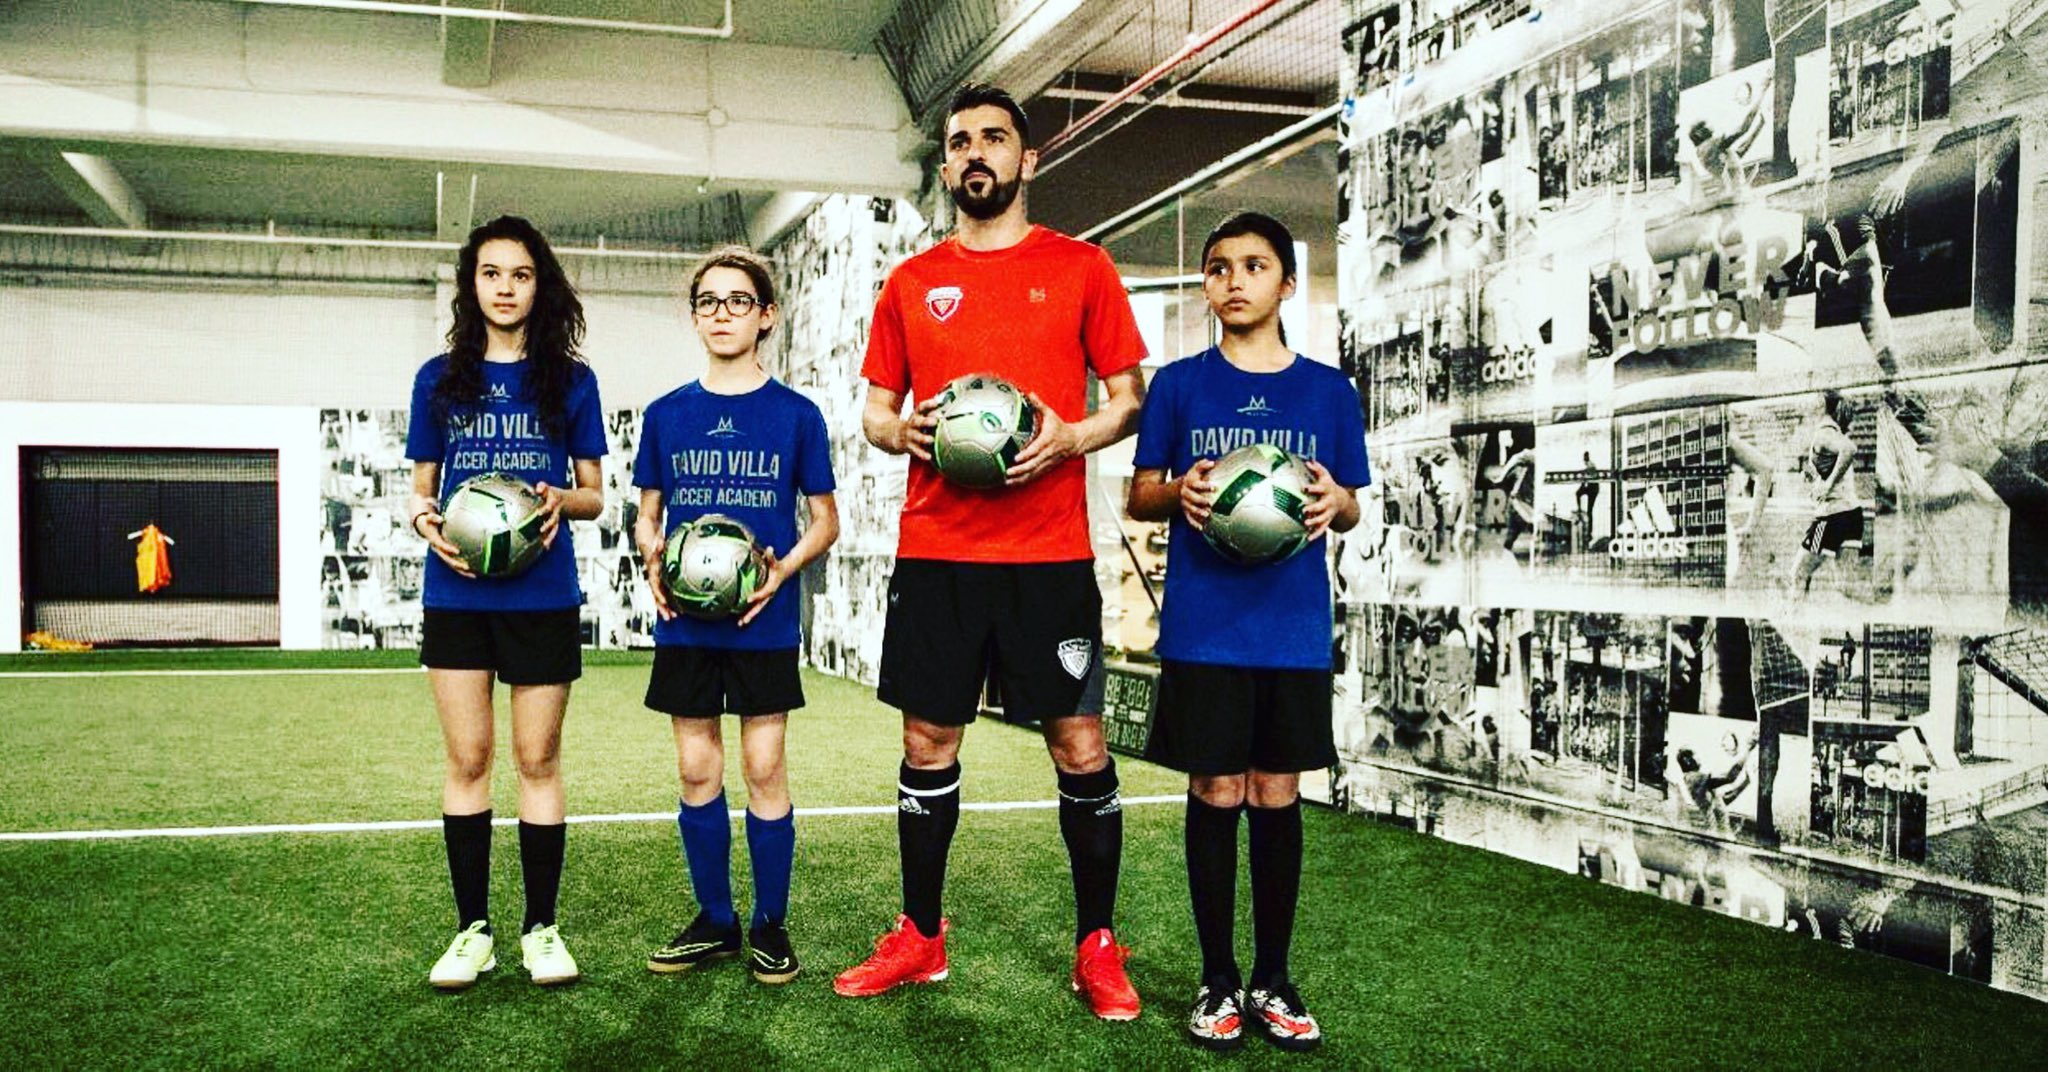 A picture of David Villa and youth soccer players at an Upper 90 Soccer Store. Ben Jata is the Director of Operations for Upper 90 and uses Olark live chat software on the website.